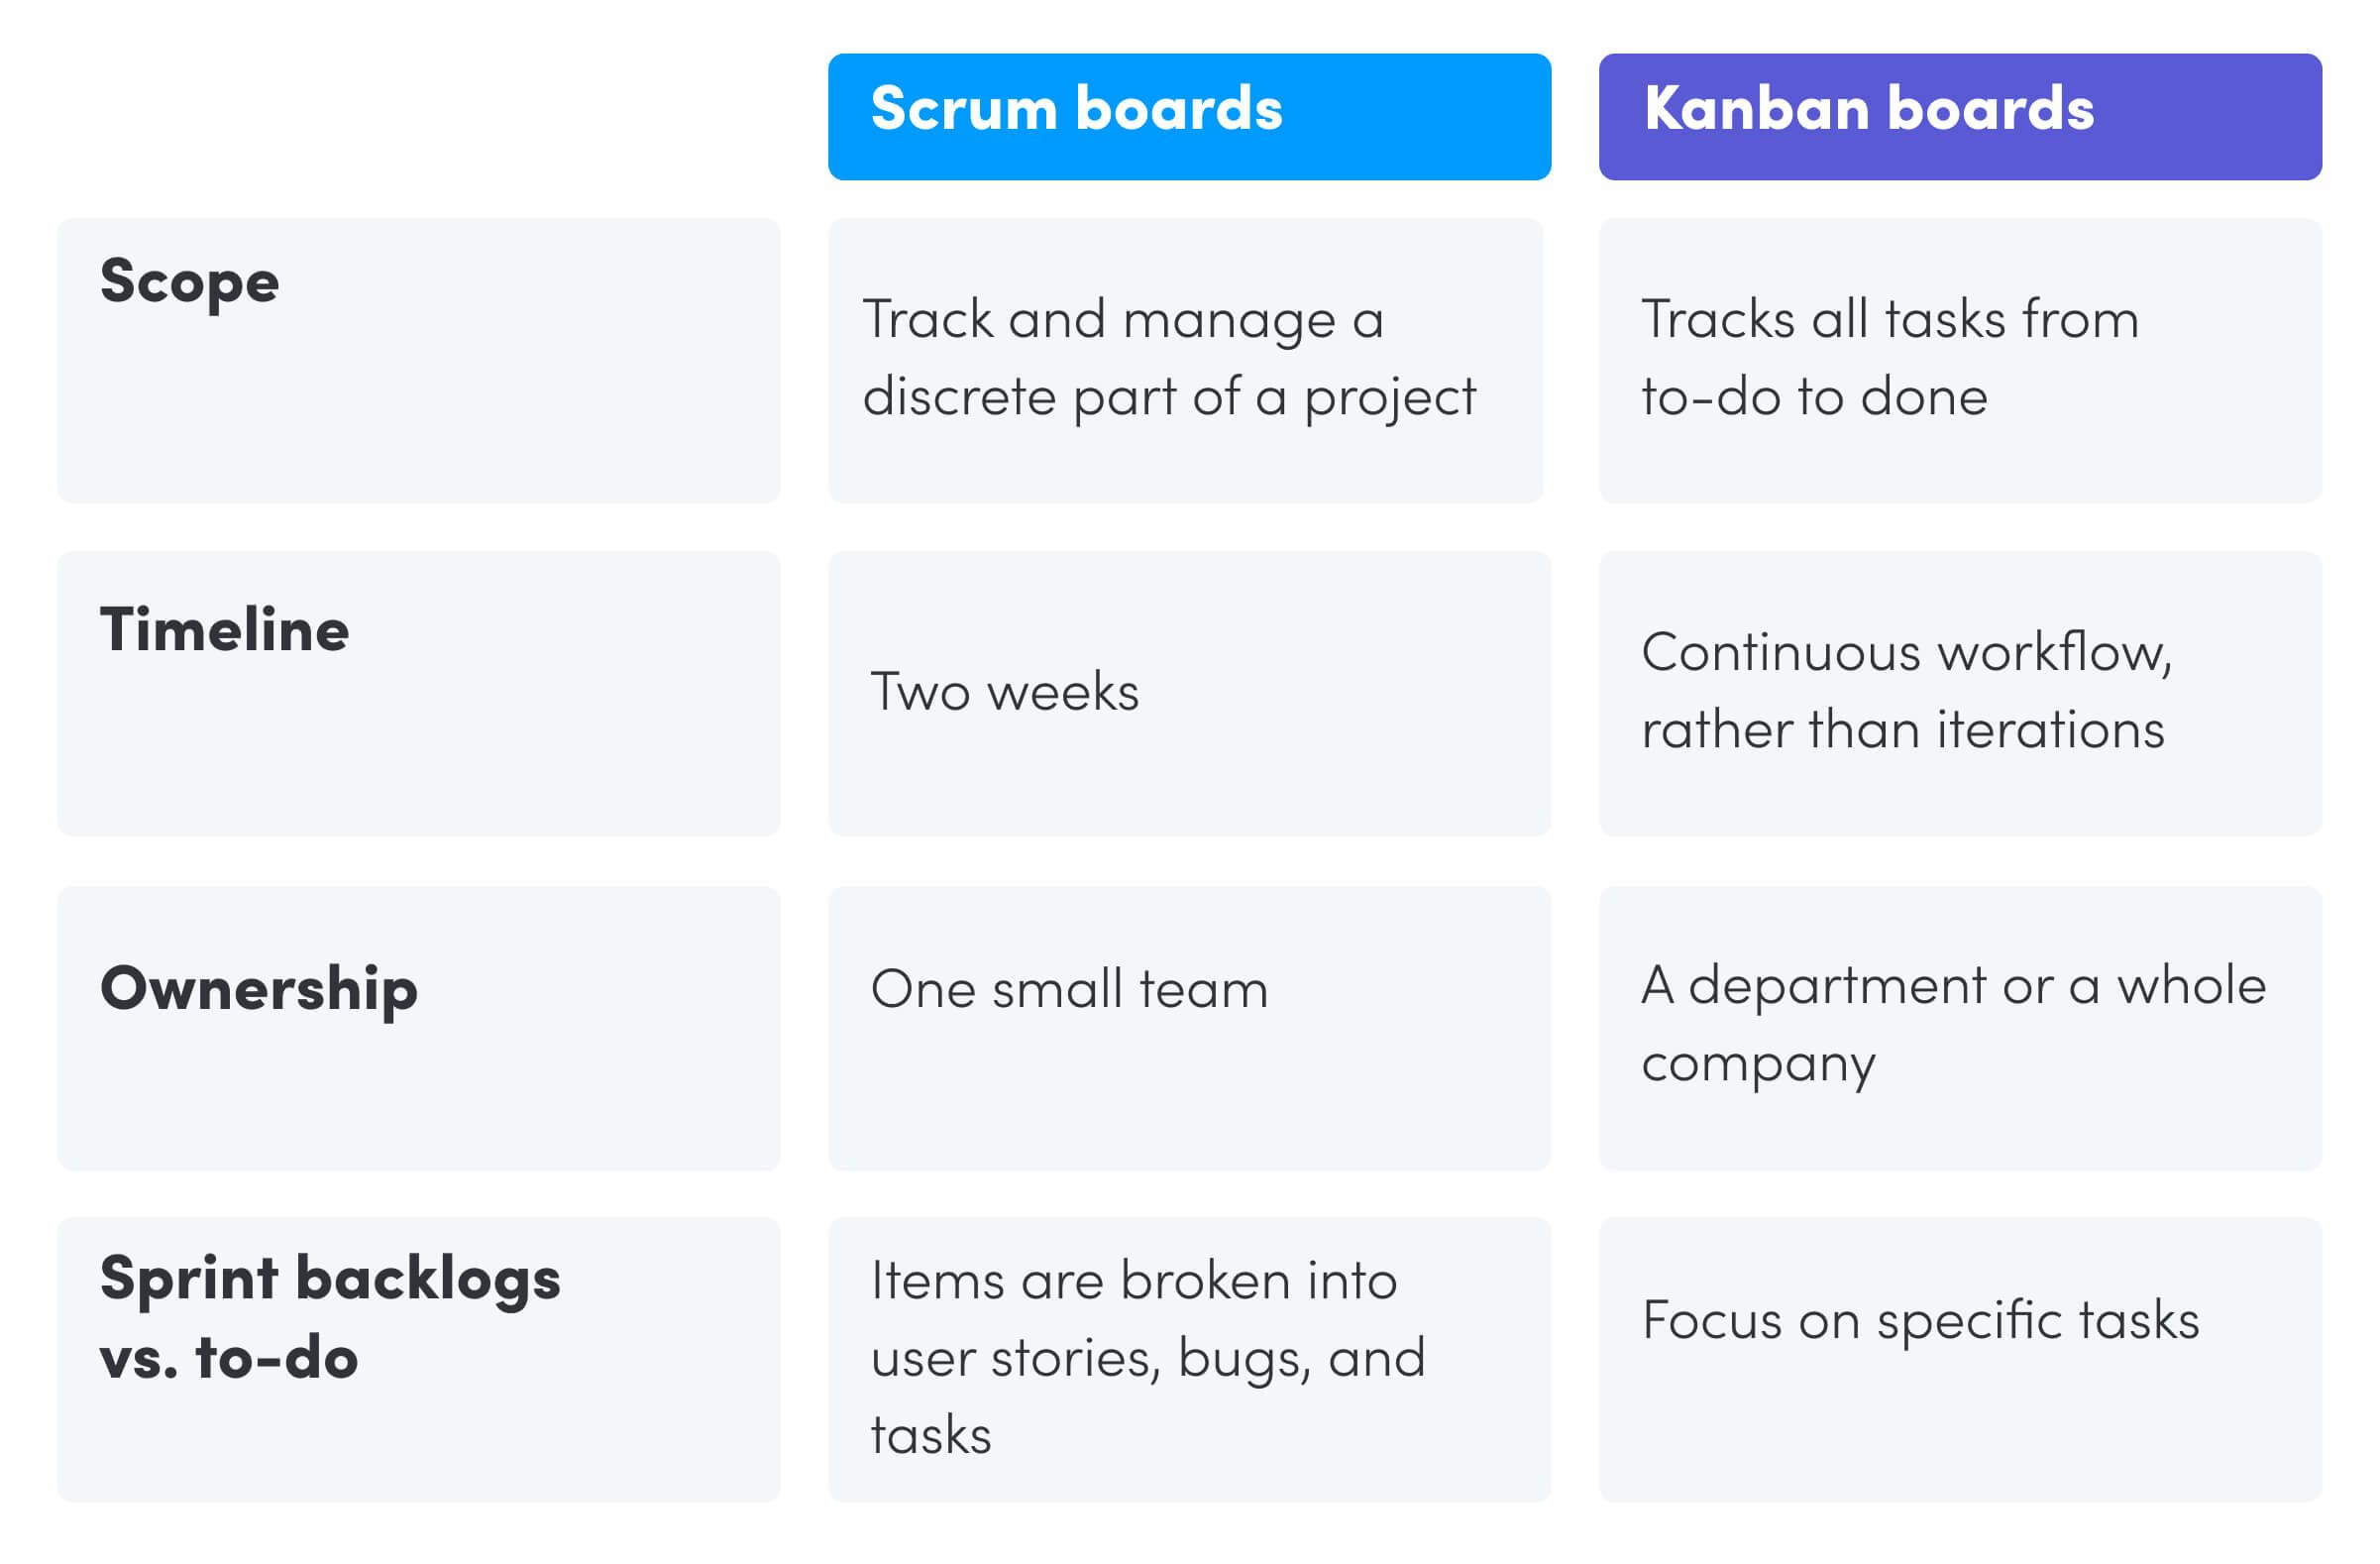 A table showing the difference between Scrum boards and Kanban boards